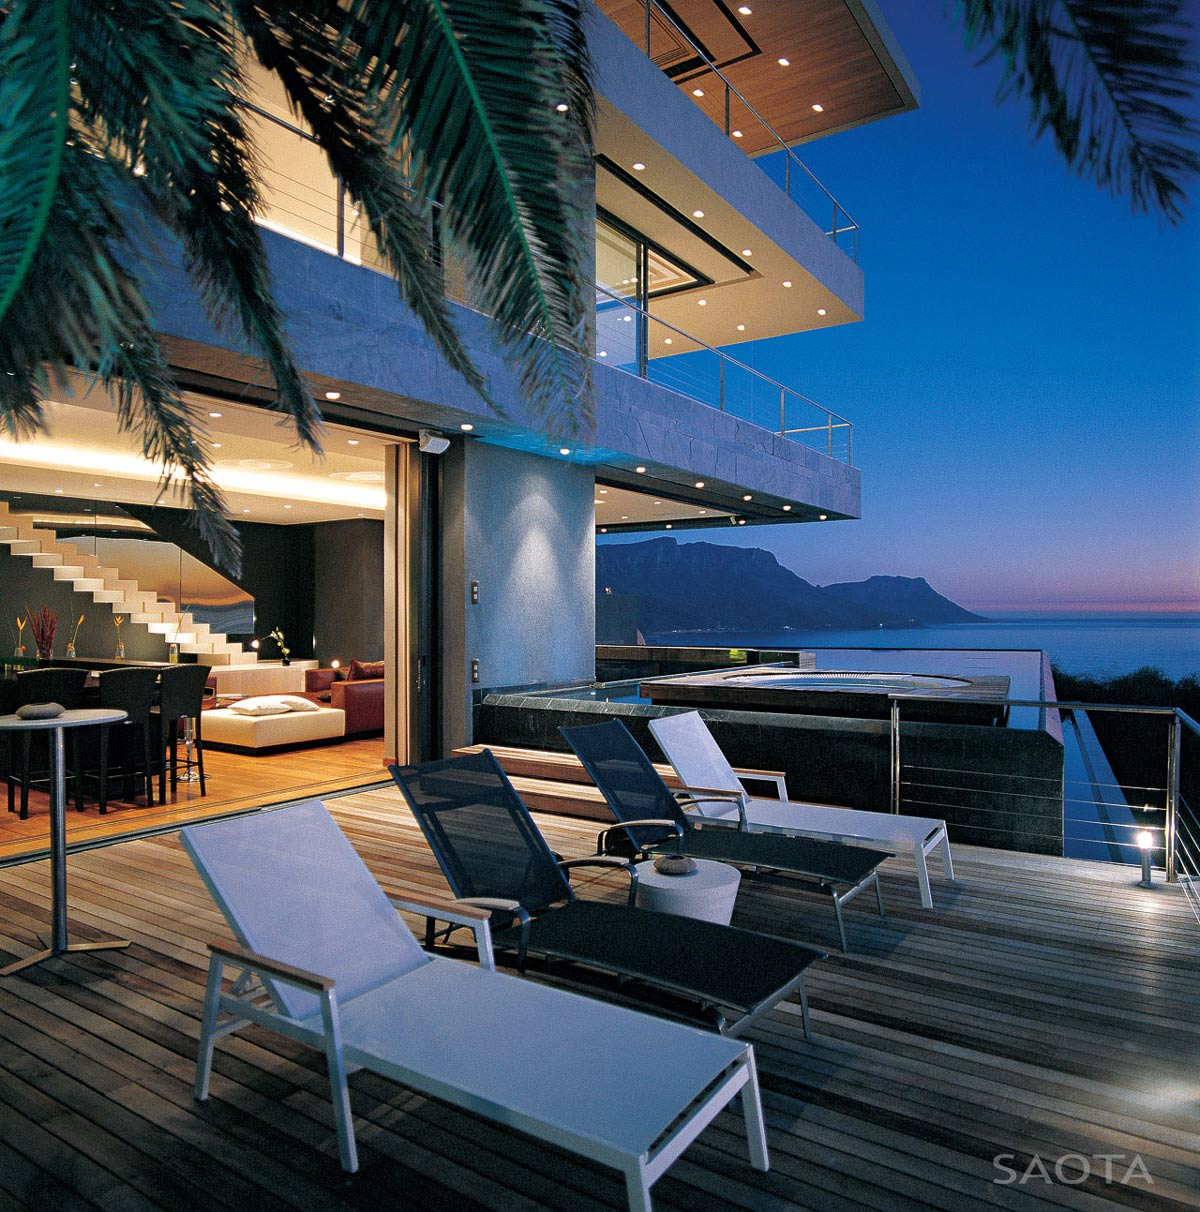 Wooden Deck, Jacuzzi, Pool, Ocean Views, St Leon 10 in Cape Town, South Africa by SAOTA and Antoni Associates